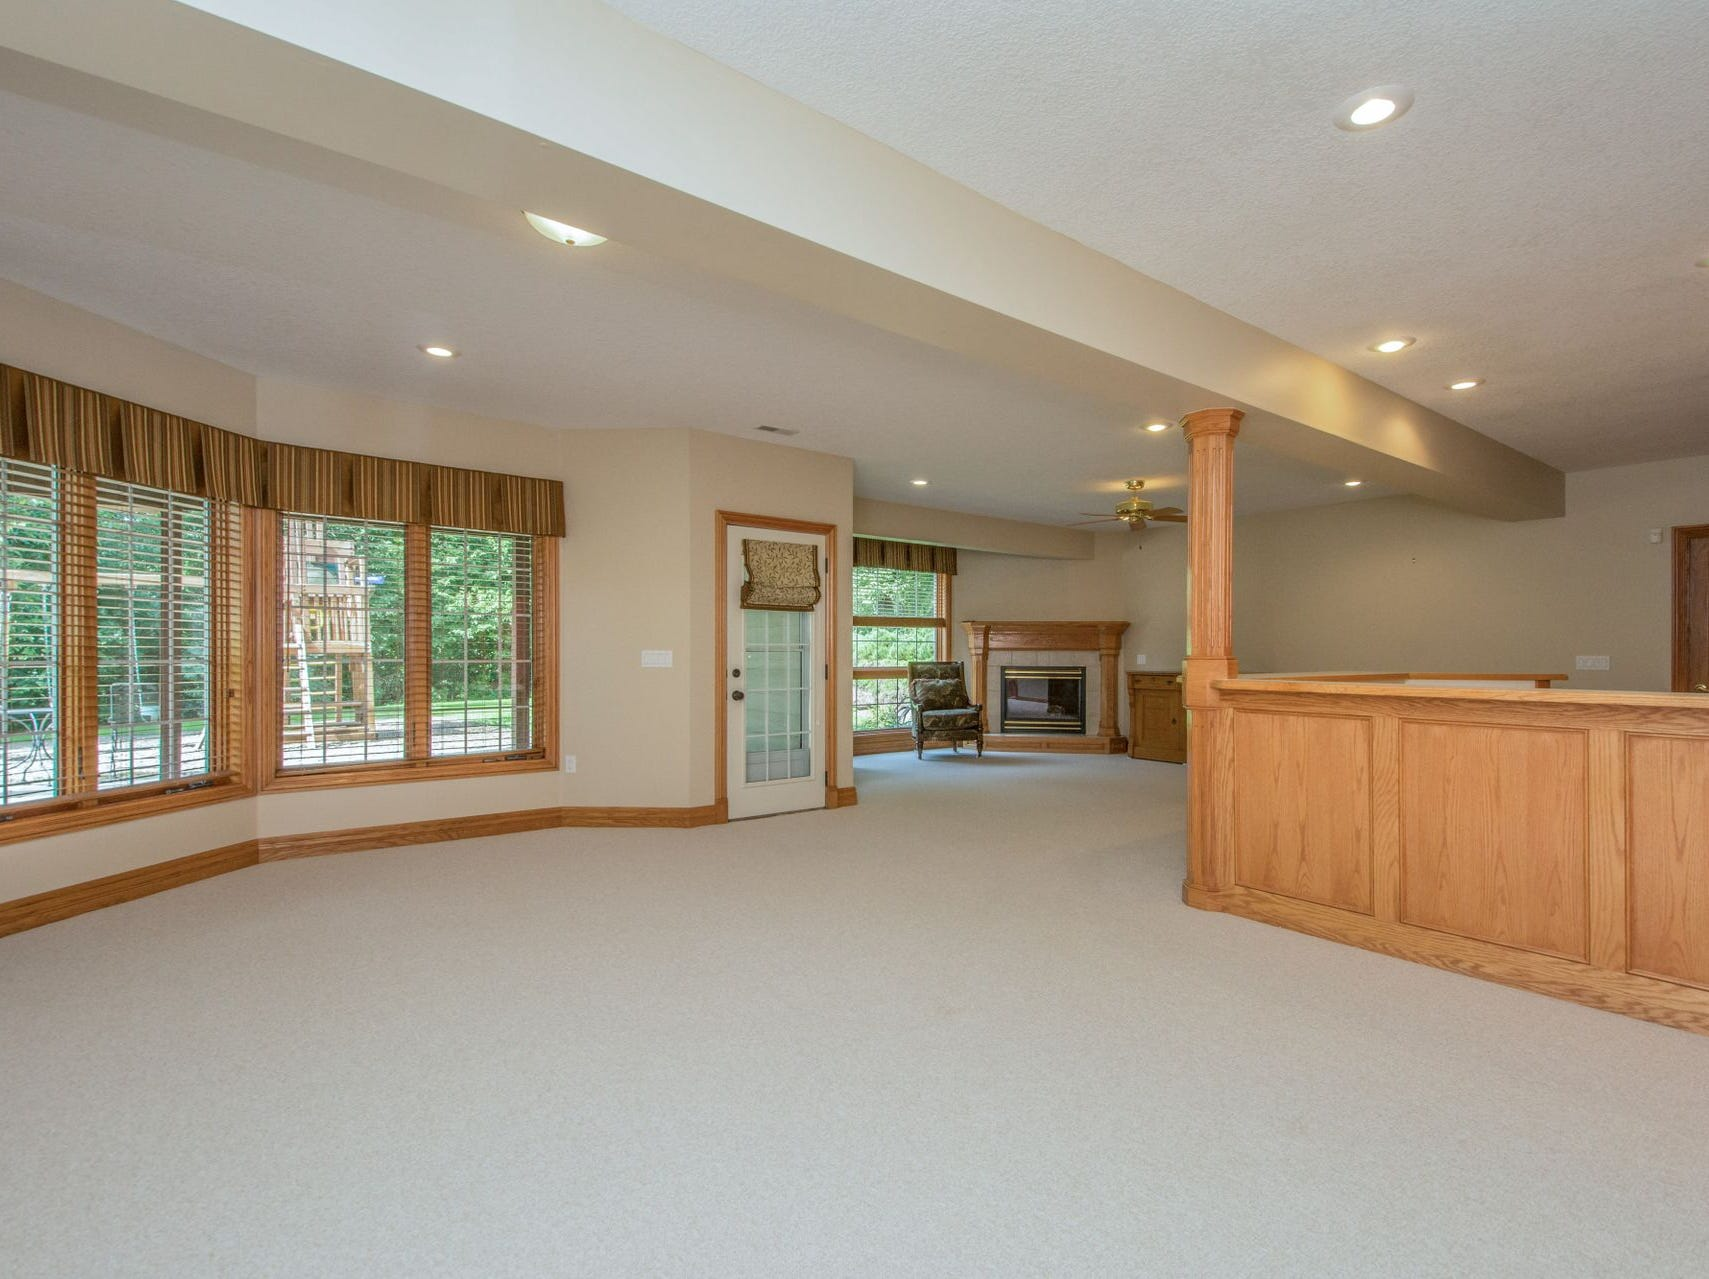 Sitting on a private 1.2-acre lot, this suburban Des Moines home has more than 3,000 square feet of finished living space.